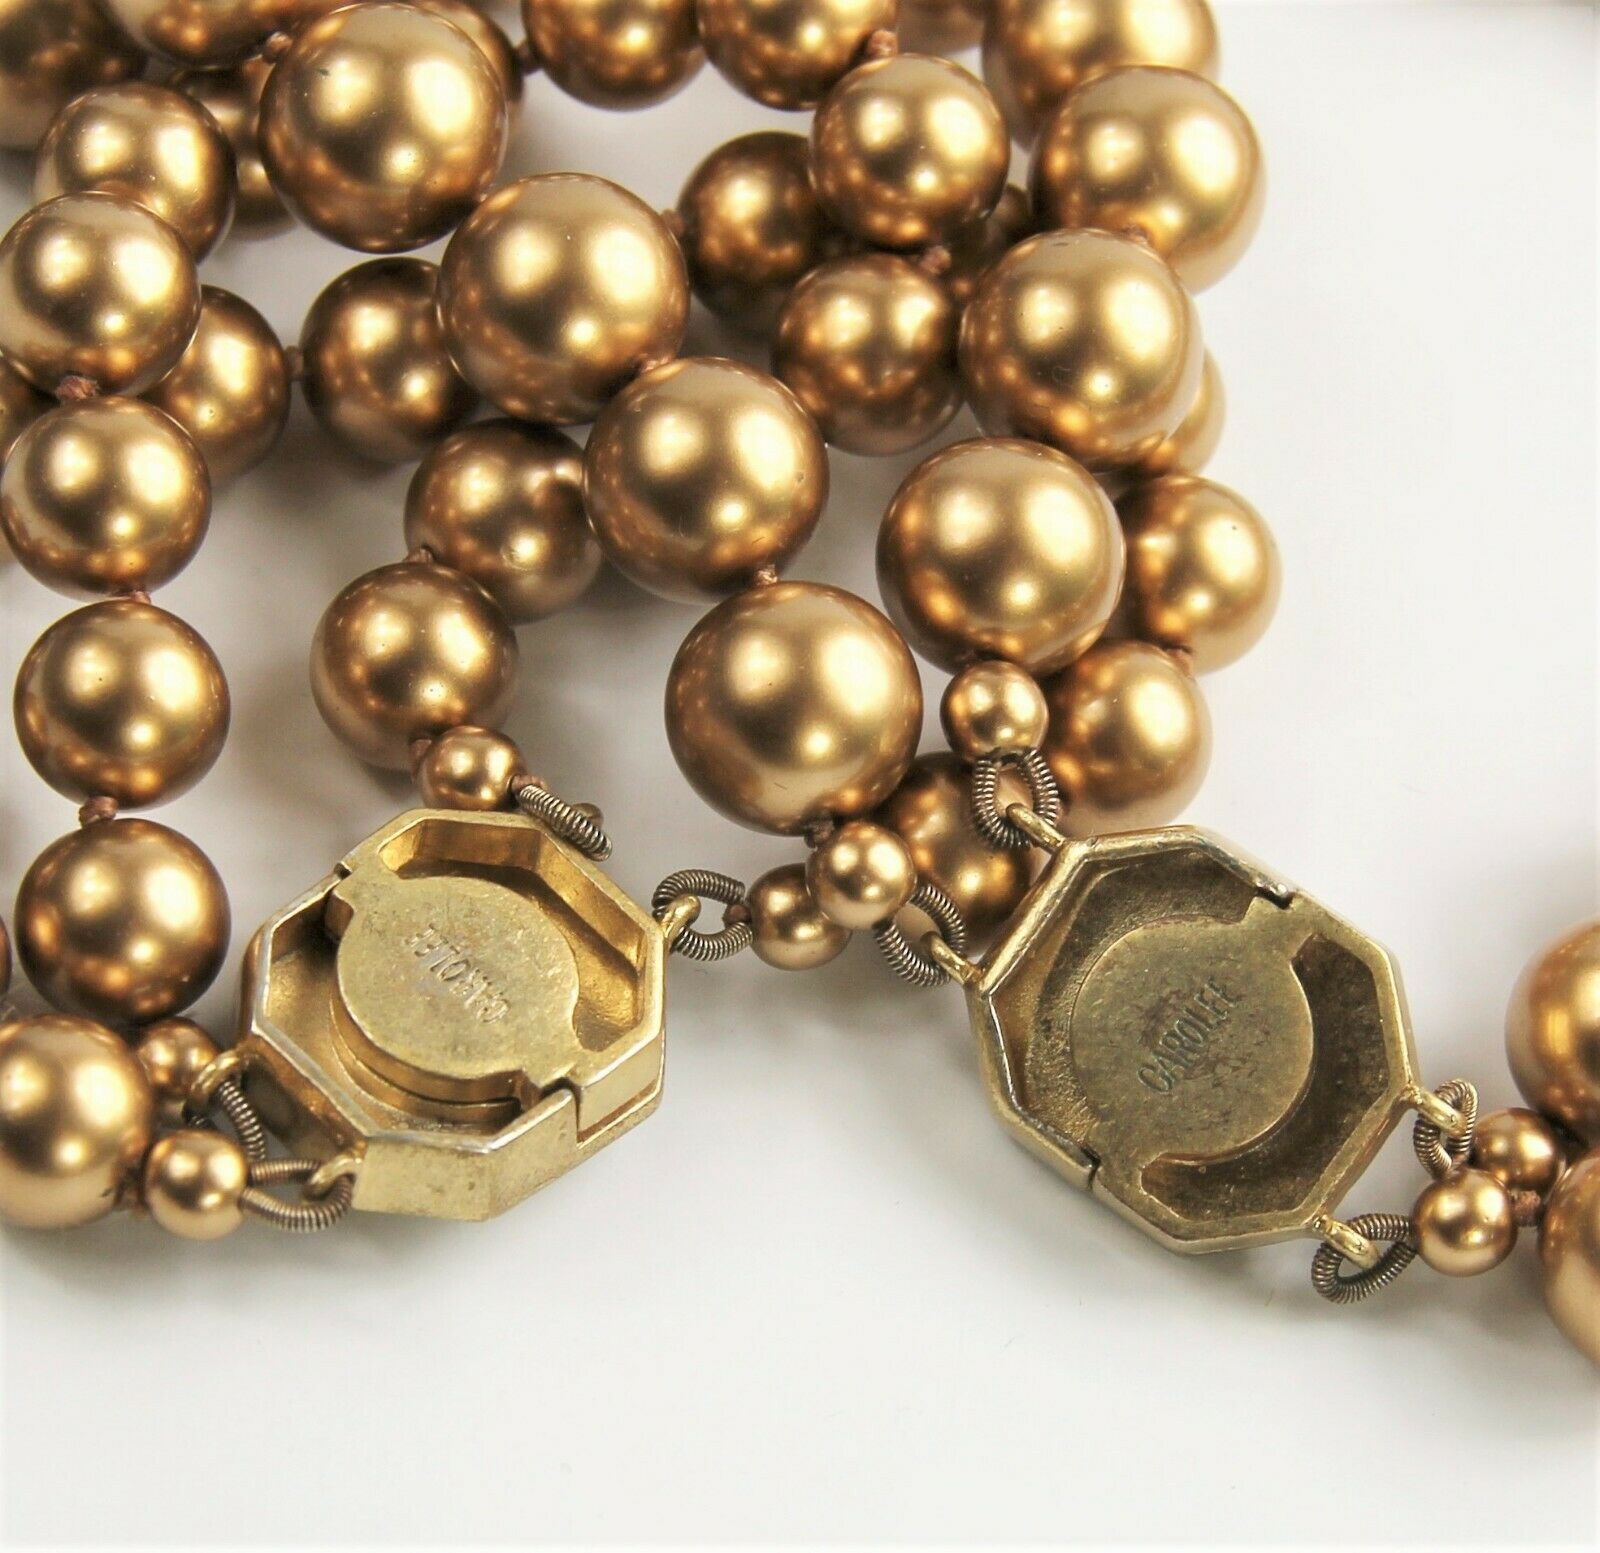 CAROLEE HAND KNOTTED BRONZE GLASS PEARL NECKLACE BRACELET SET RHINESTONE CLASPS